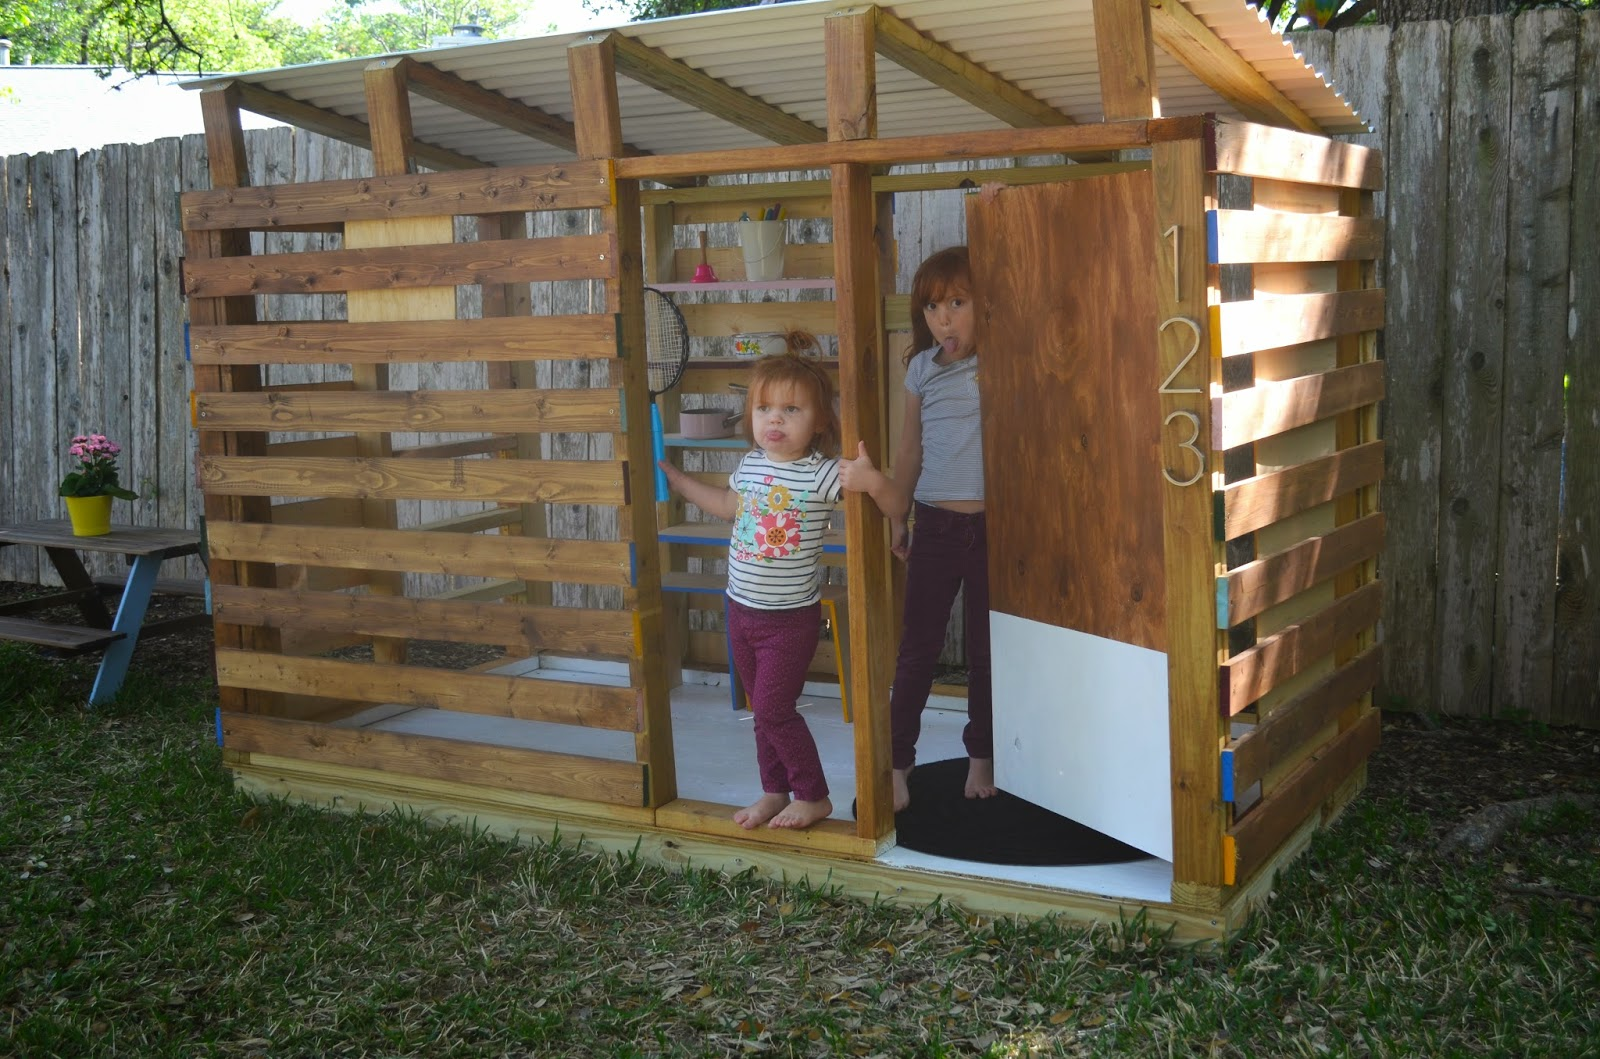 Woodwork modern playhouse diy pdf plans for How to make a playhouse out of wood